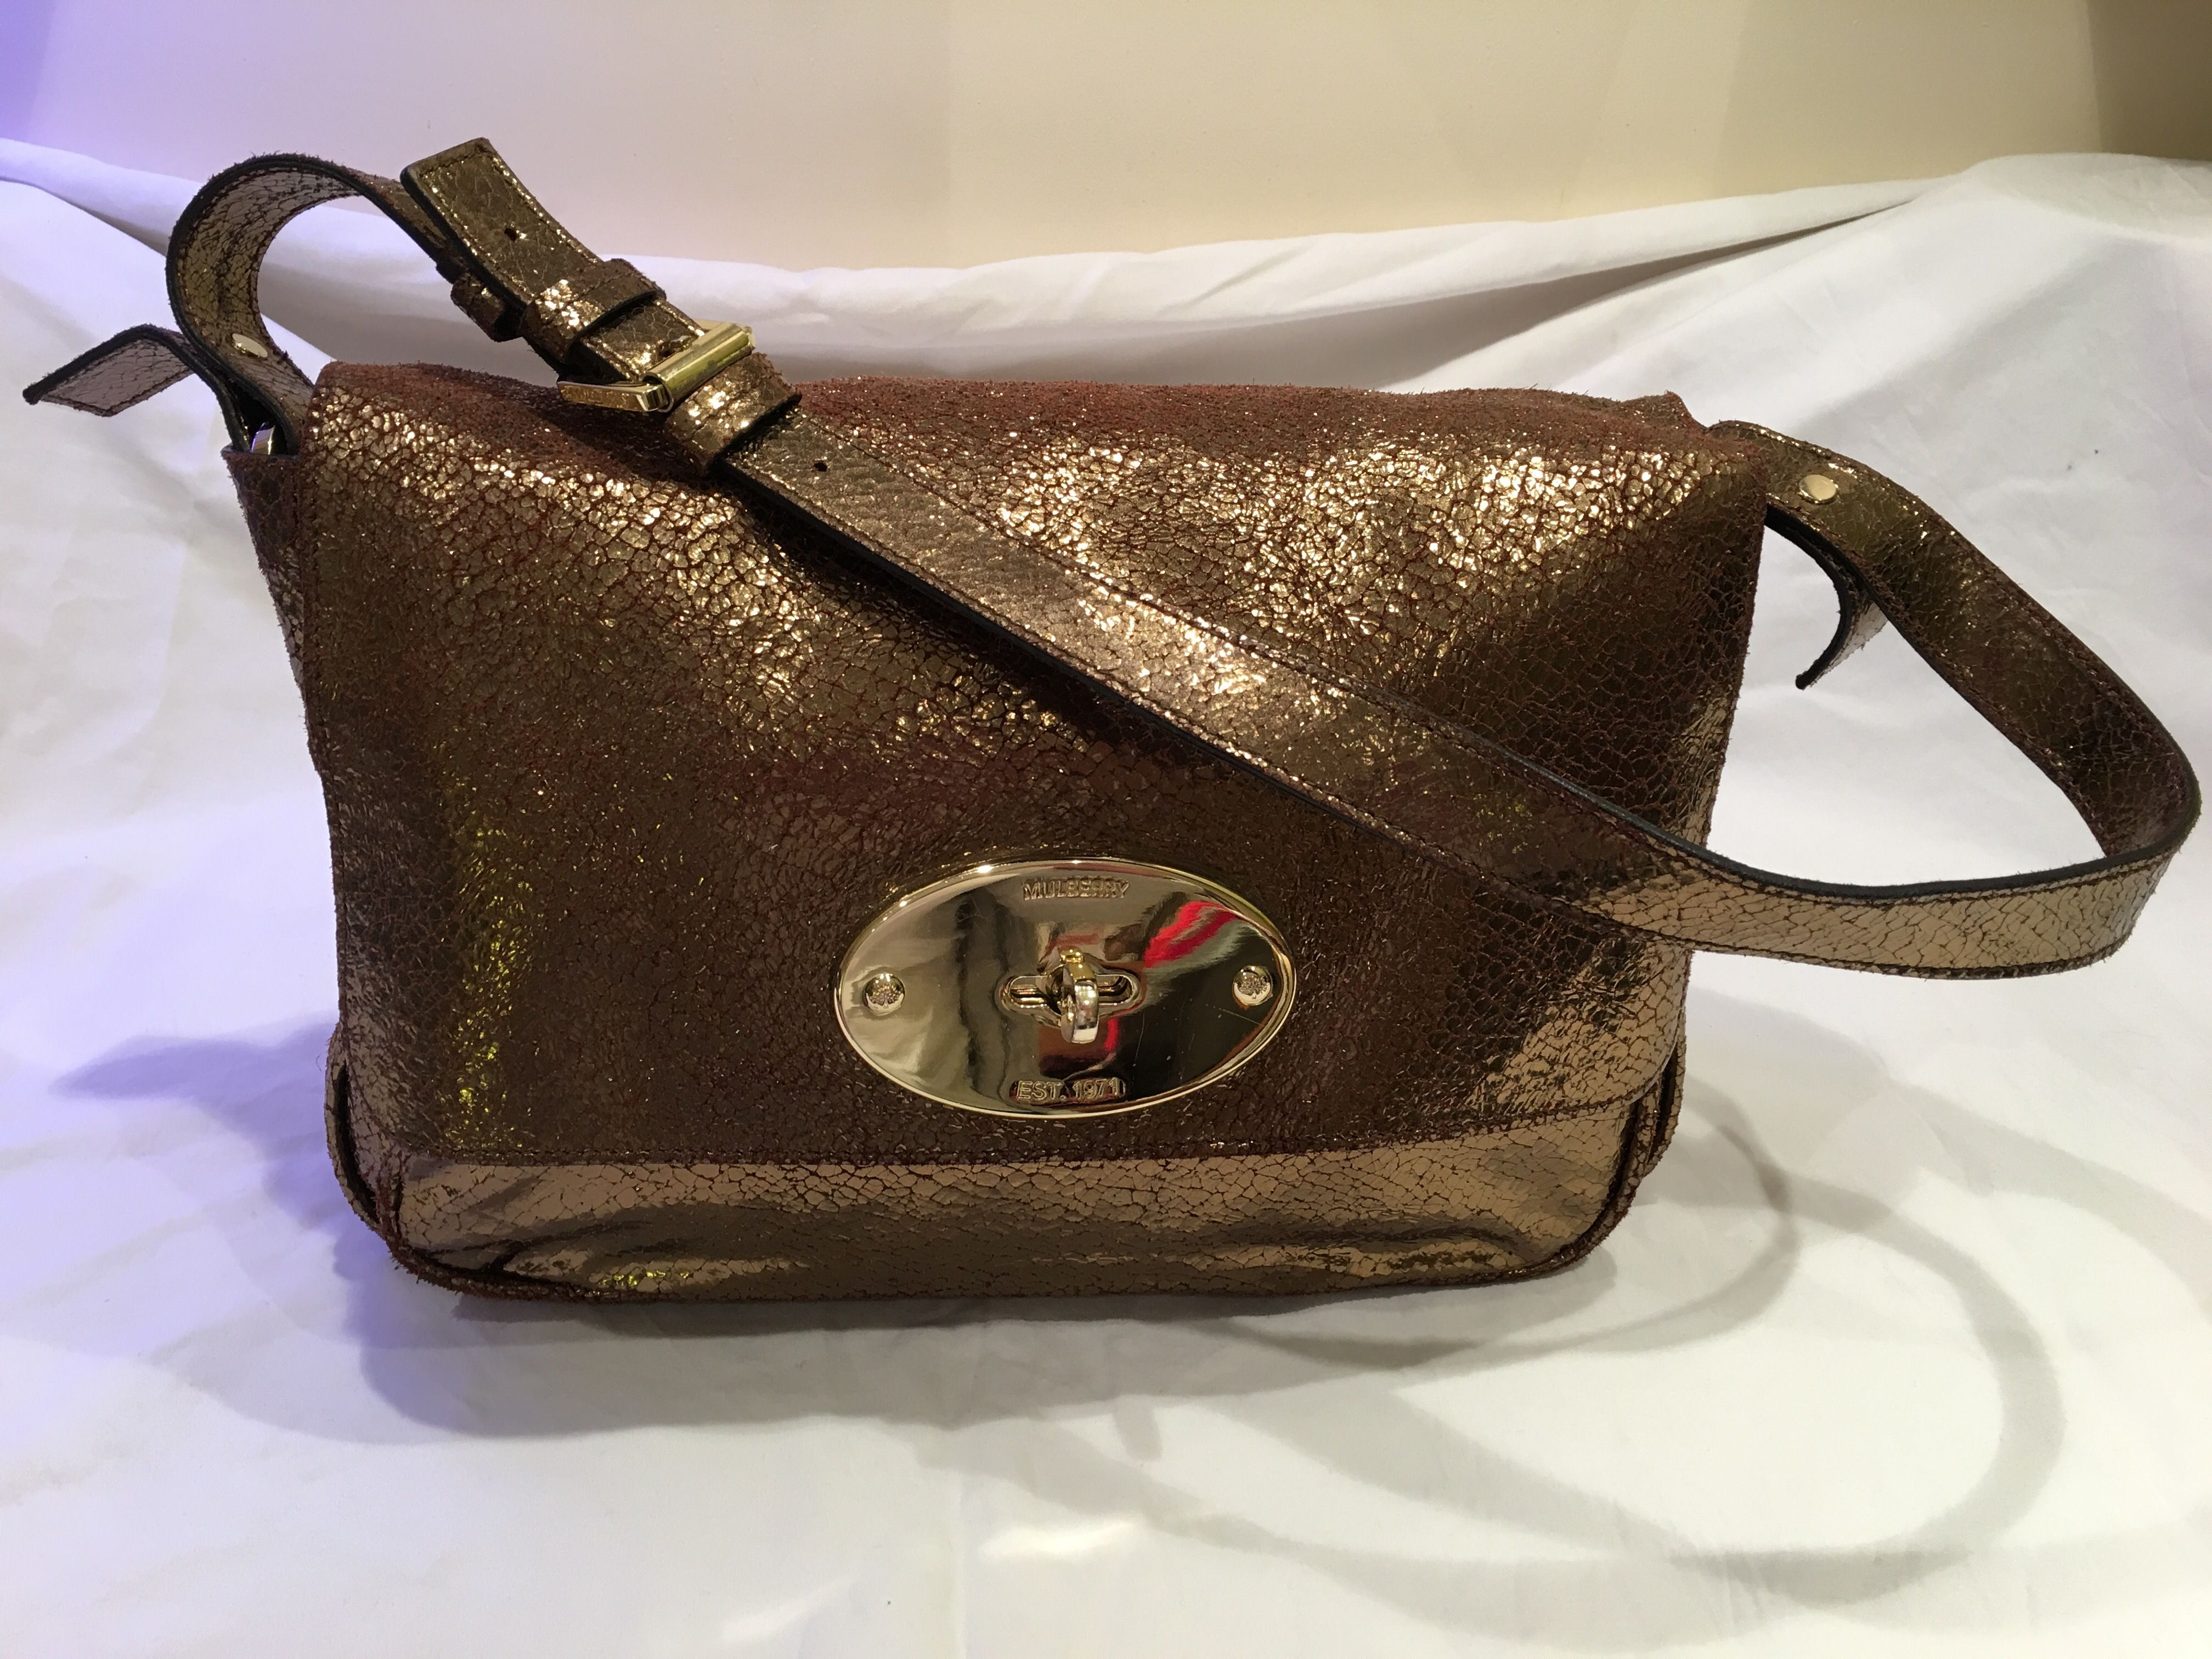 Mulberry Bayswater Clutch in Antique Gold Cracked Metallic ... 5b706bc978e26